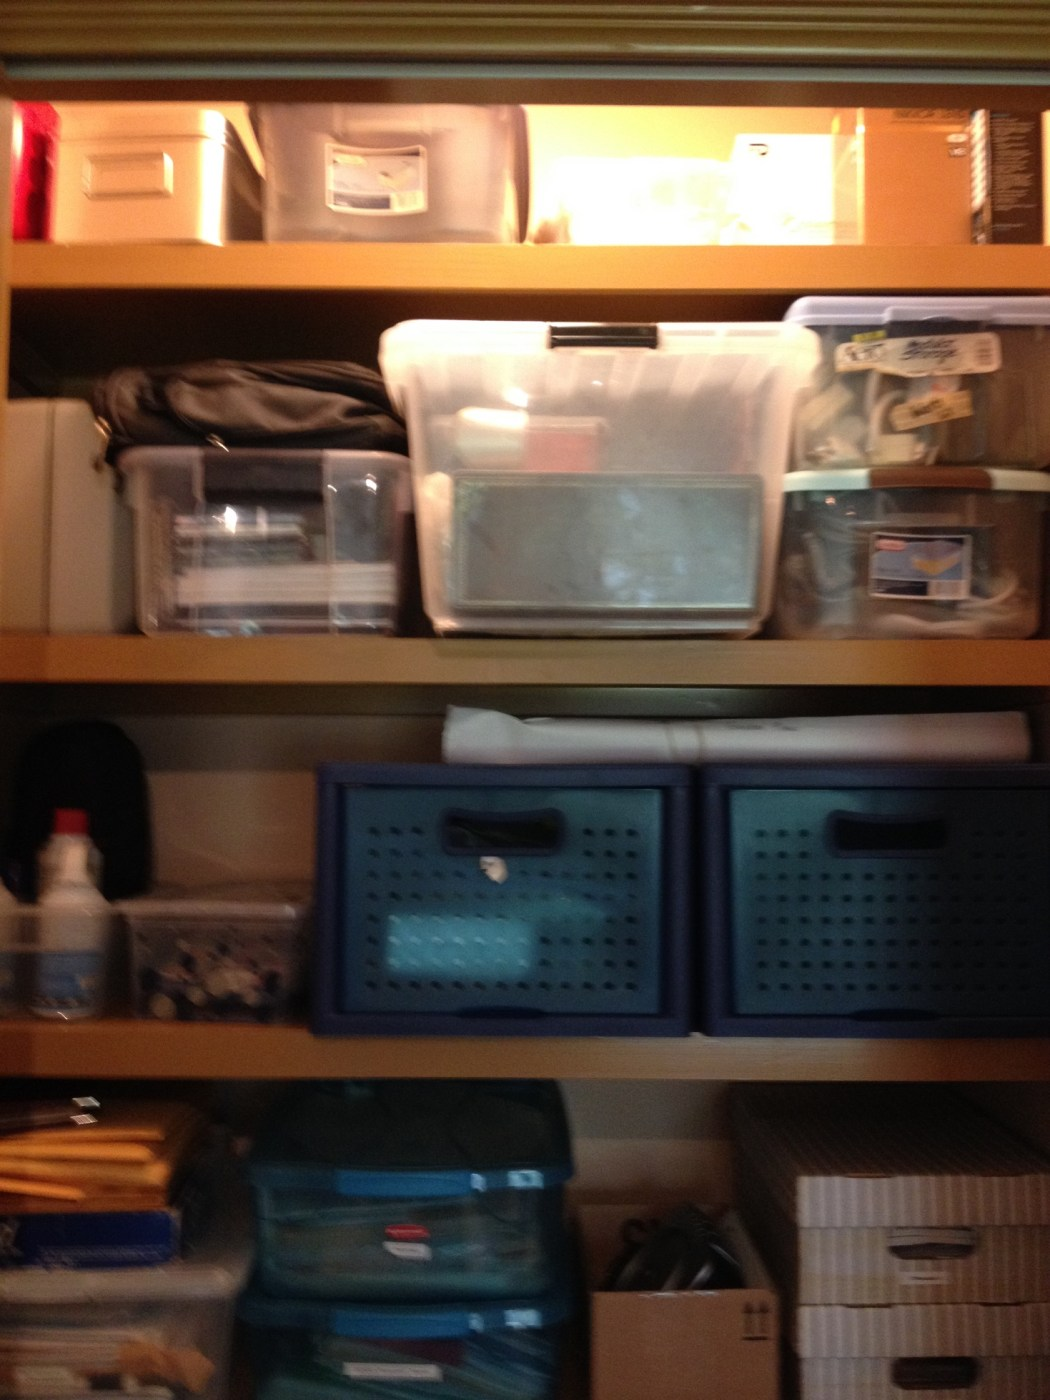 Purging Outdated Technology in a Home Office Closet  - Organized Top View of Home Office Closet